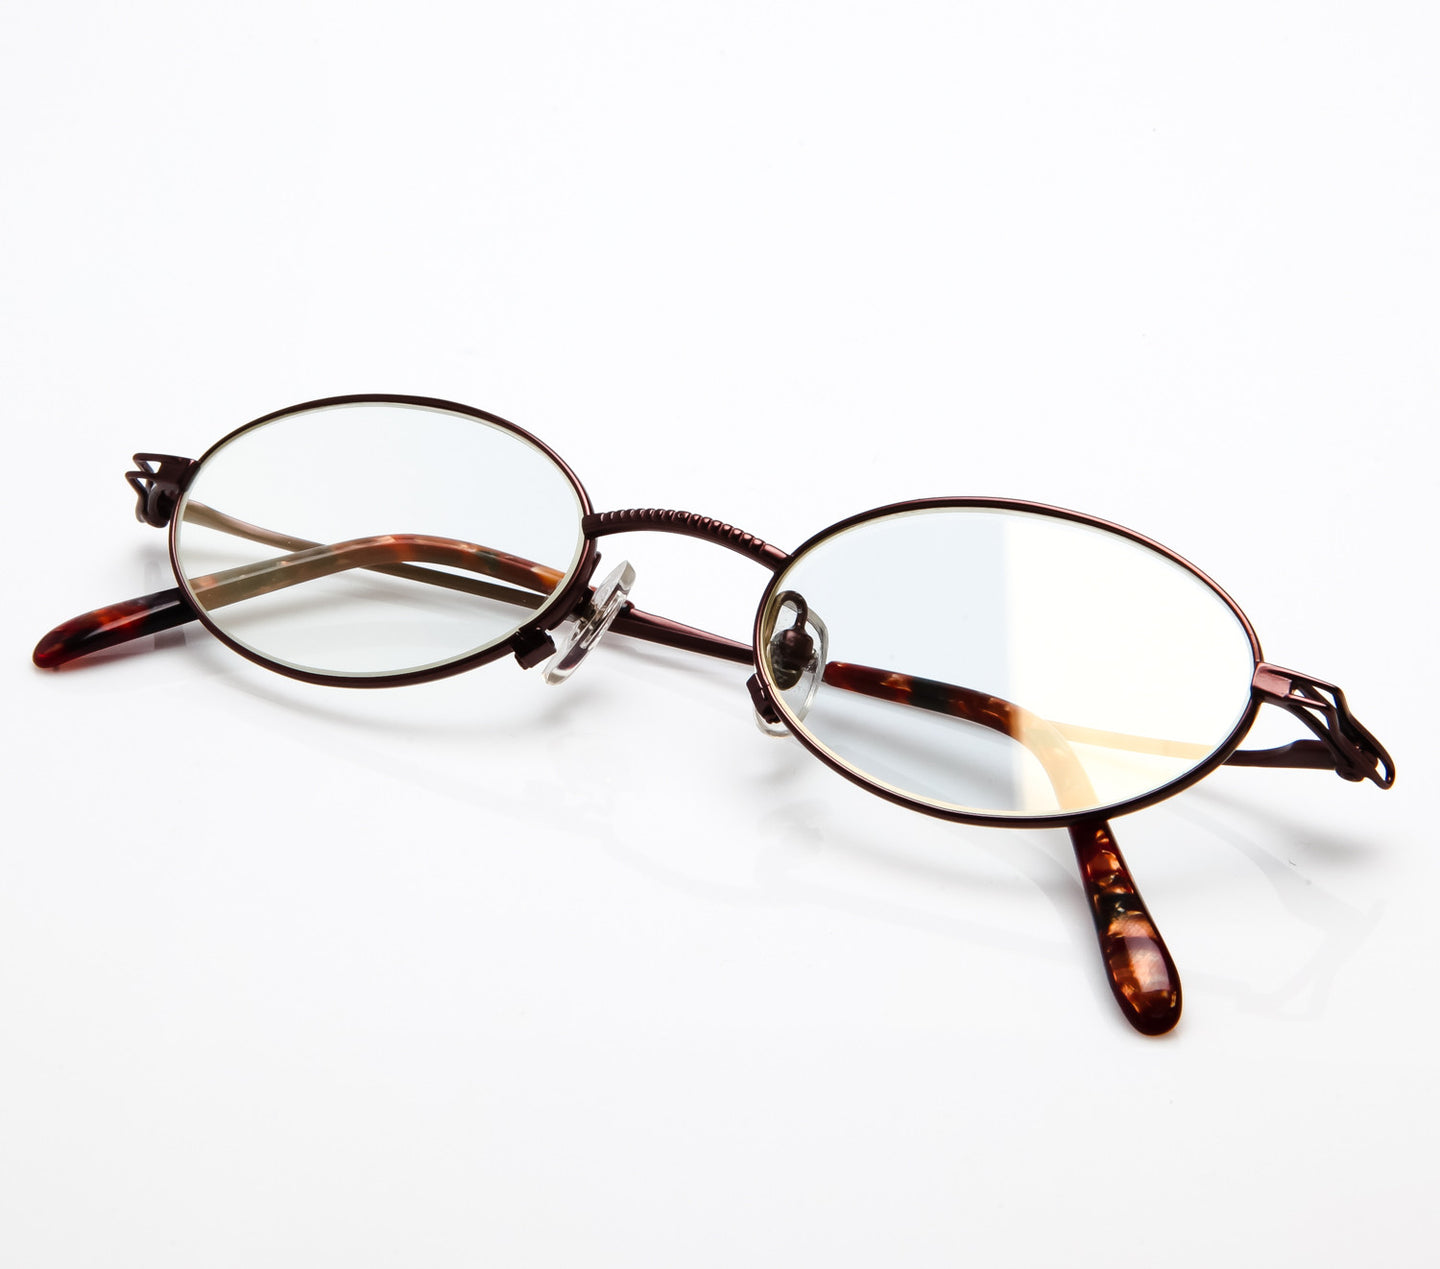 Paolo Gucci 7456 HINI 21k Gold Plated Flash Gold Special Edition Flat Lens, Paolo Gucci , glasses frames, eyeglasses online, eyeglass frames, mens glasses, womens glasses, buy glasses online, designer eyeglasses, vintage sunglasses, retro sunglasses, vintage glasses, sunglass, eyeglass, glasses, lens, vintage frames company, vf